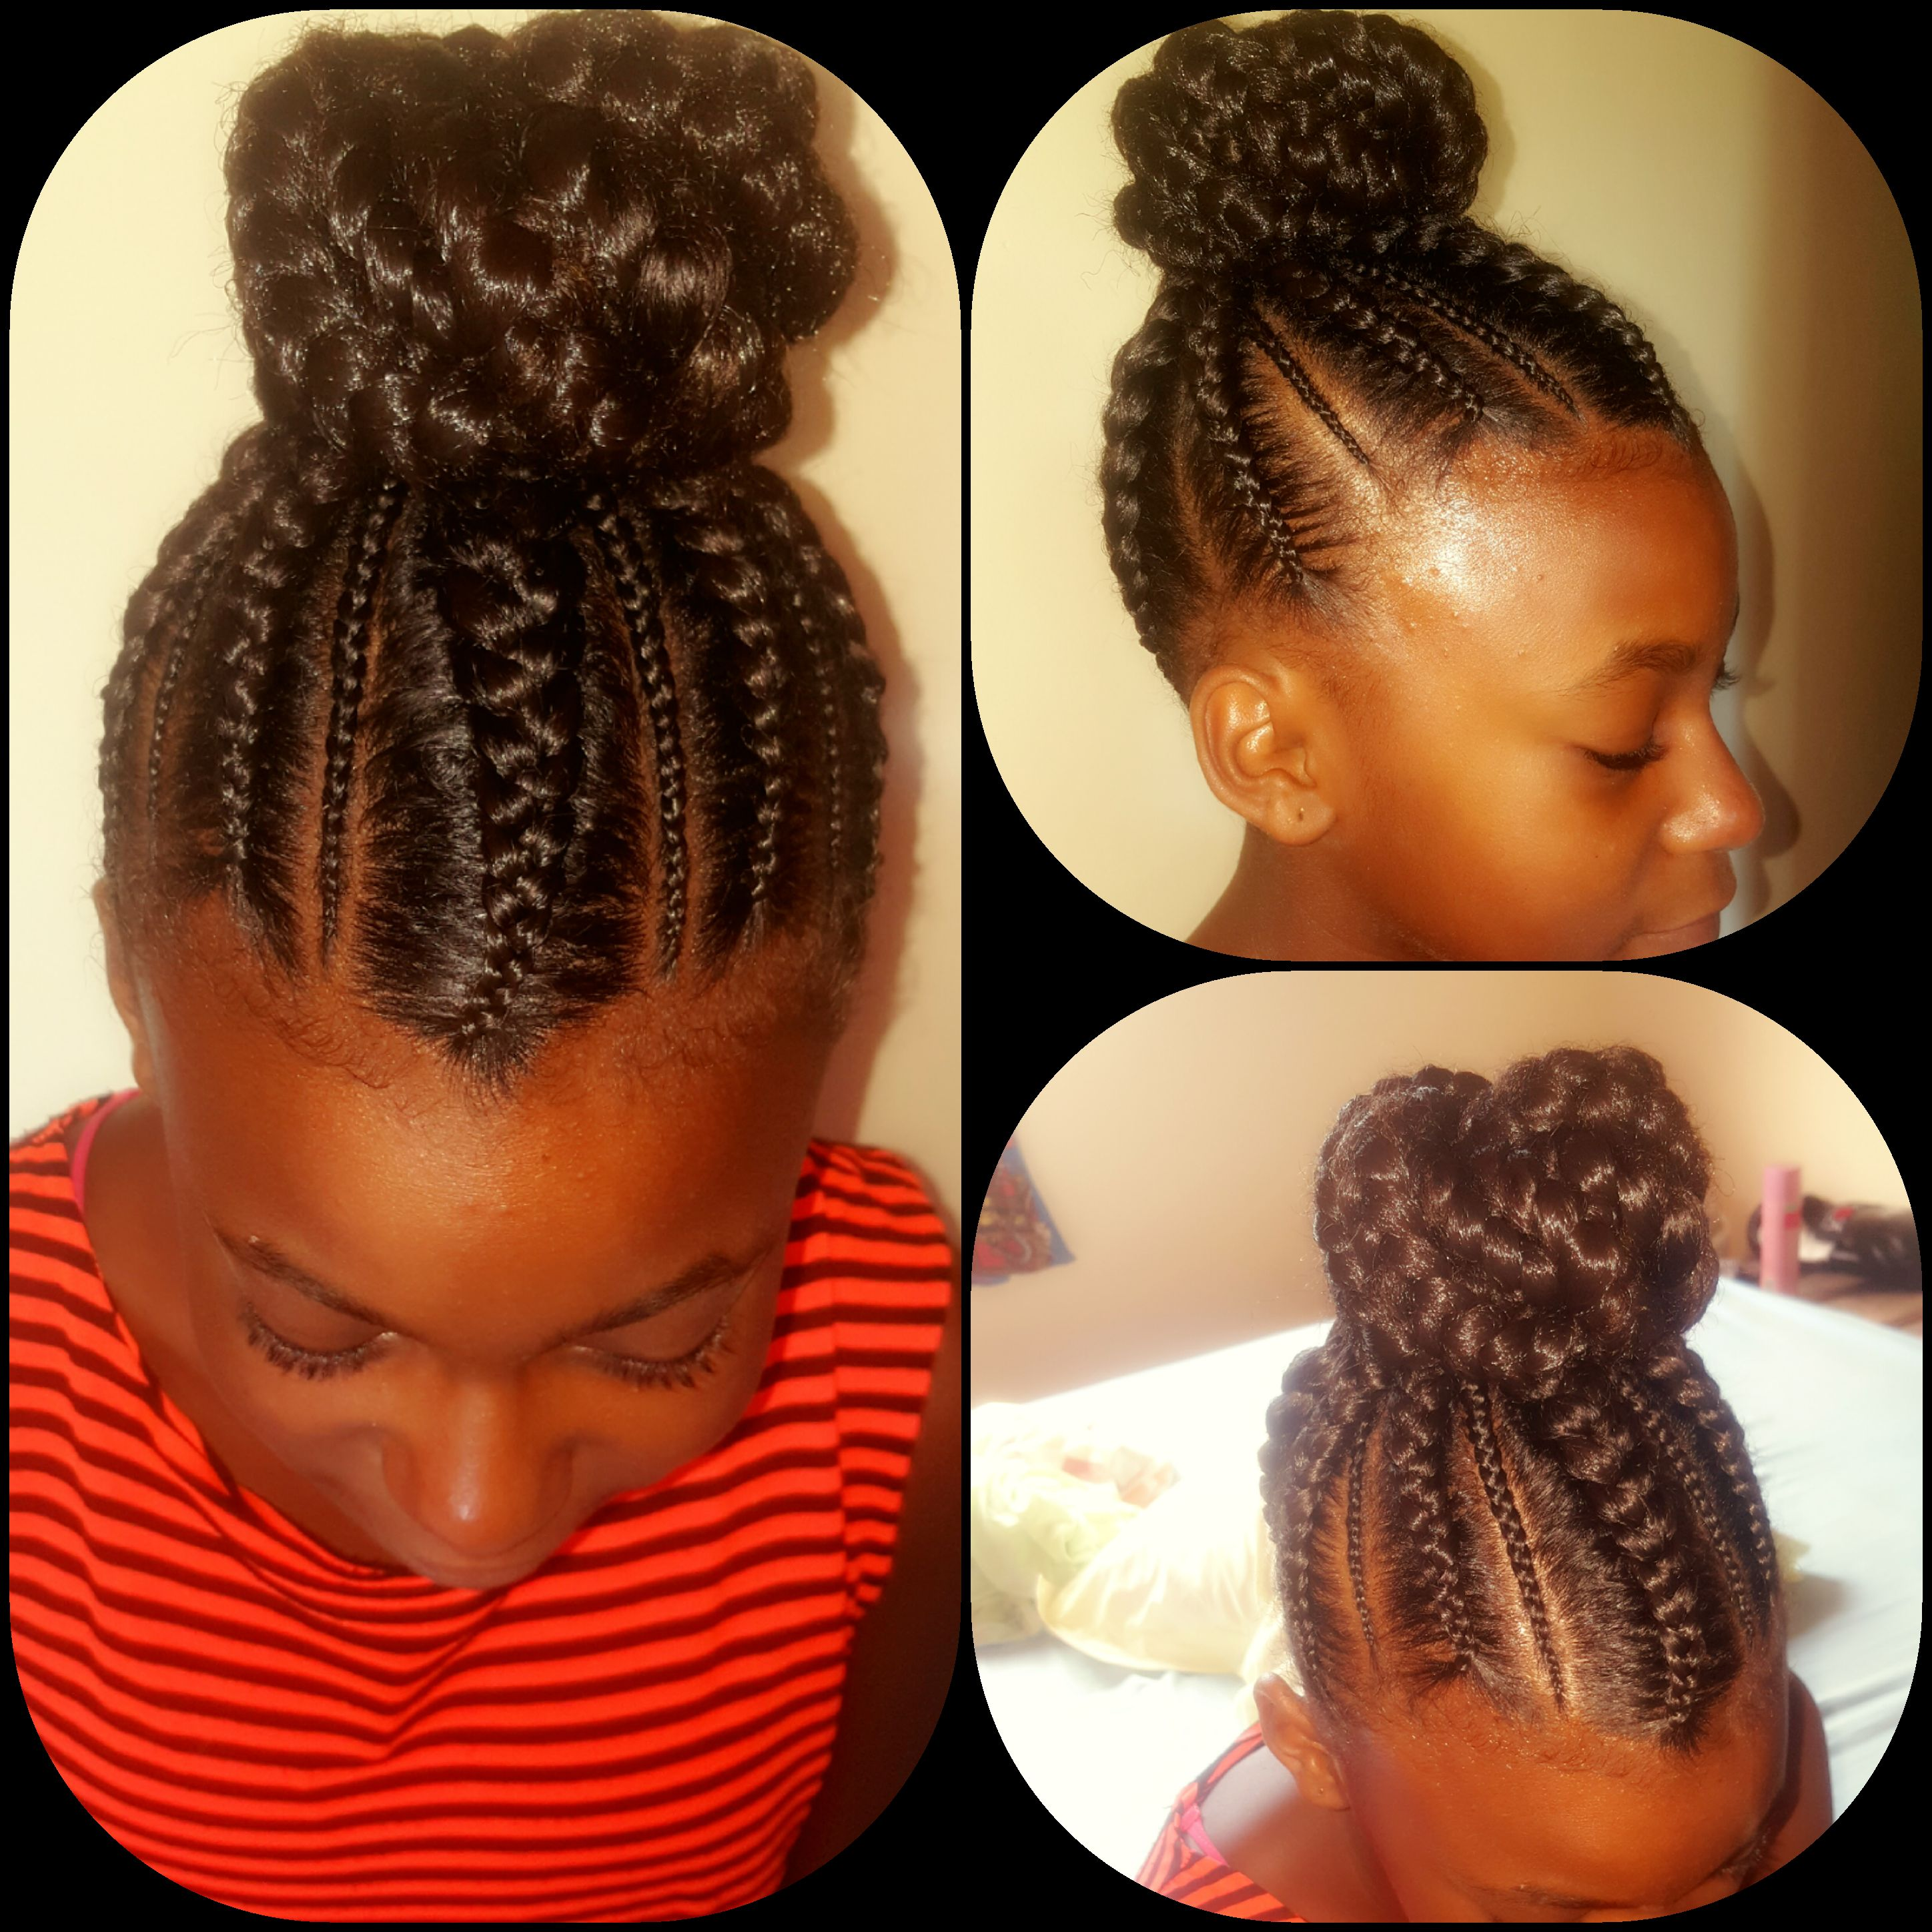 salon de coiffure afro tresse tresses box braids crochet braids vanilles tissages paris 75 77 78 91 92 93 94 95 VQDWBFMK